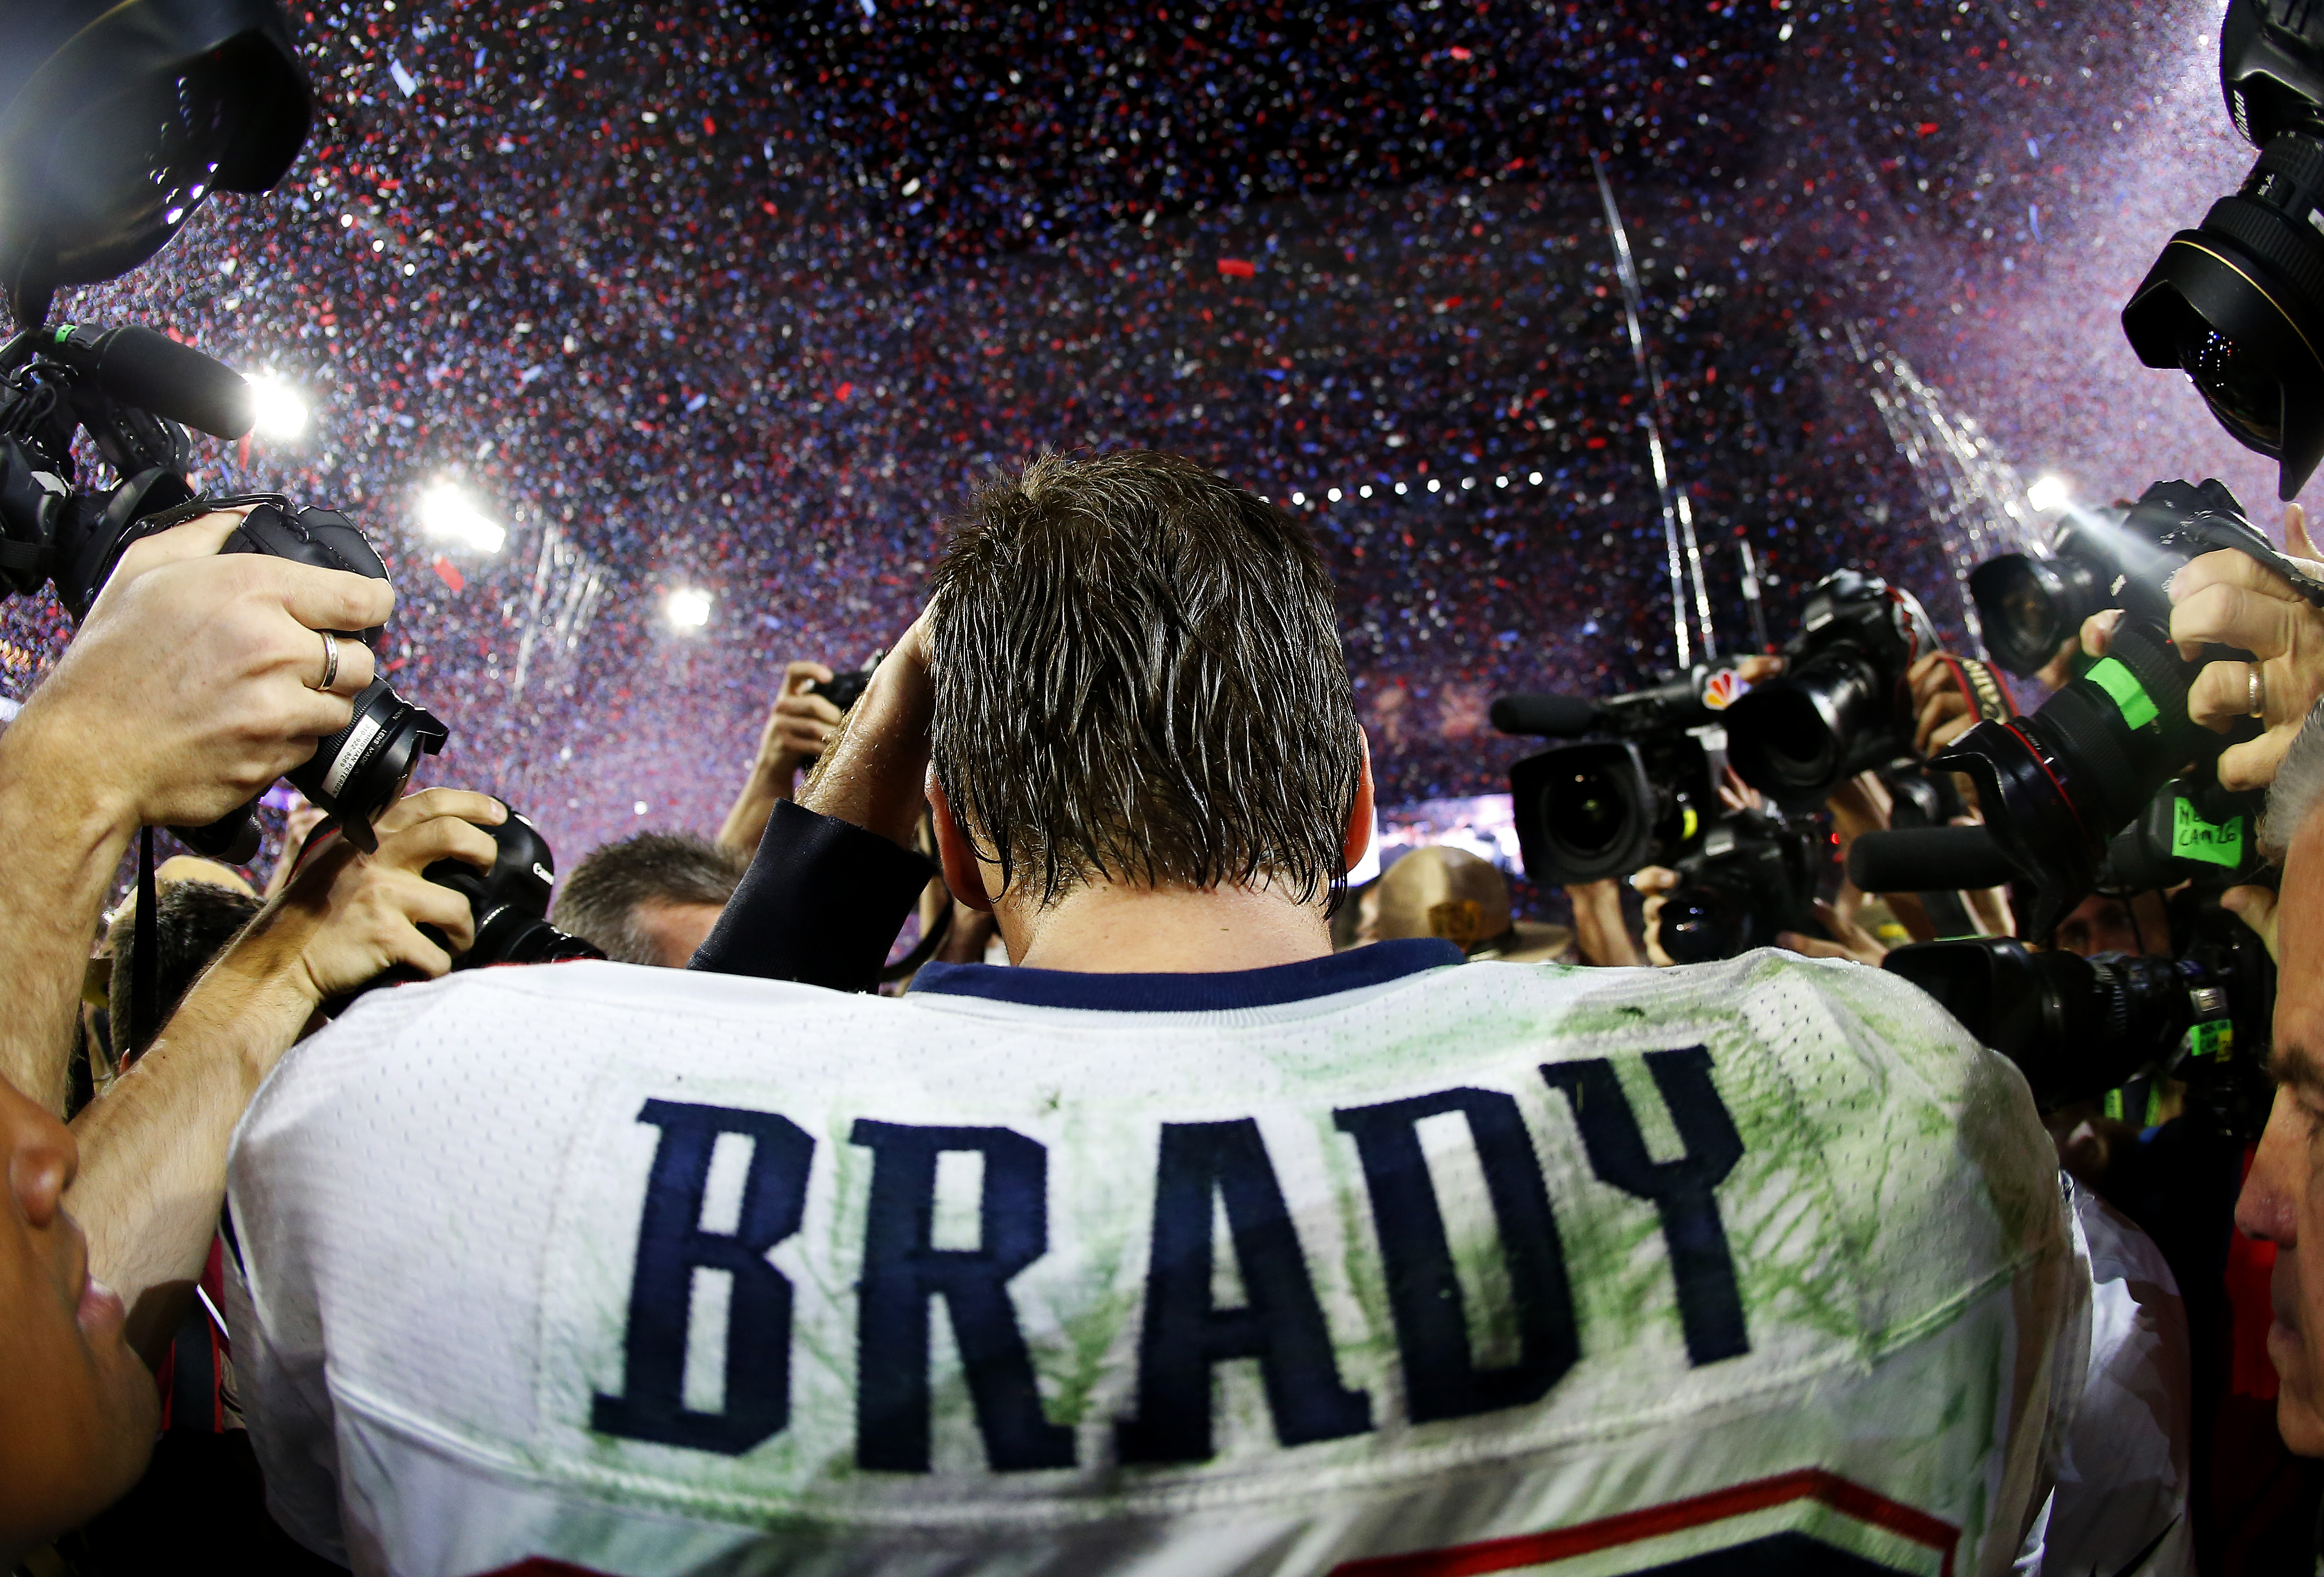 Tom Brady #12 of the New England Patriots is surrounded by the media after defeating the Seattle Seahawks 28-24 during Super Bowl XLIX at University of Phoenix Stadium on February 1, 2015 in Glendale, Arizona.